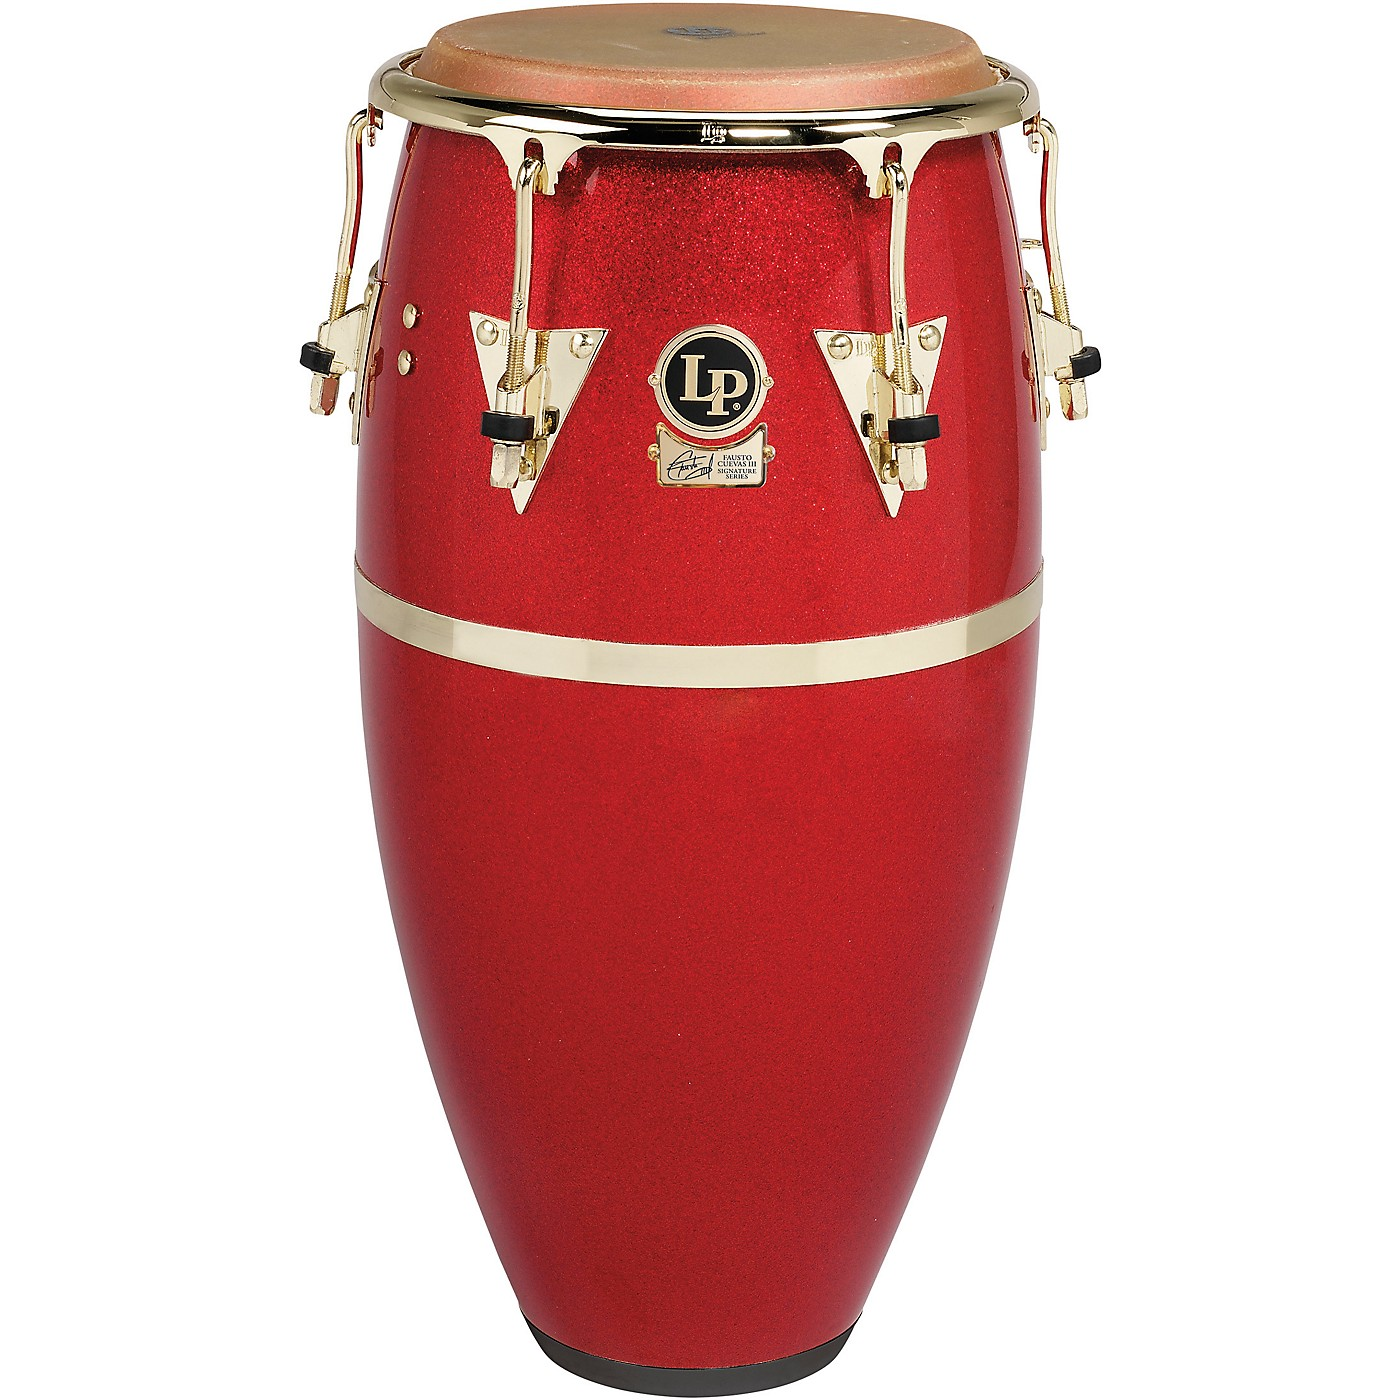 LP Galaxy Fiberglass Fausto Cuevas III Signature Conga, Arena Red with Gold Hardware thumbnail